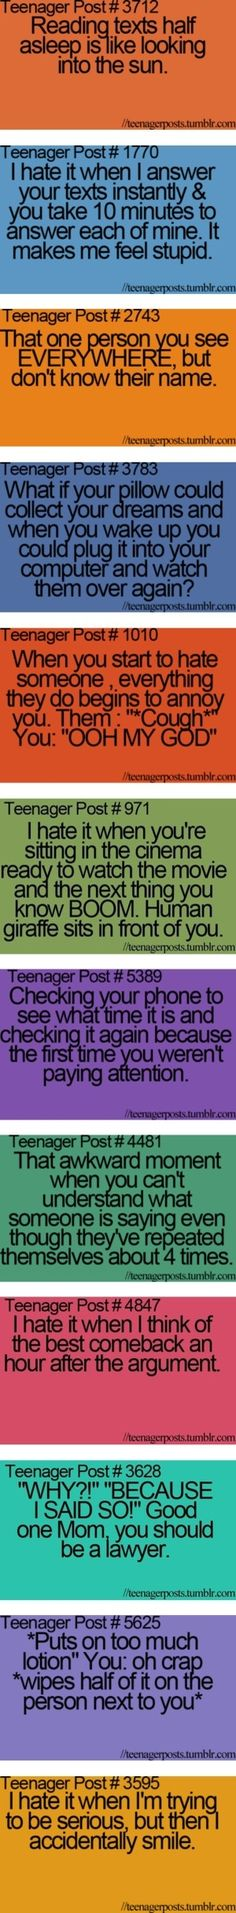 I can relate to these!